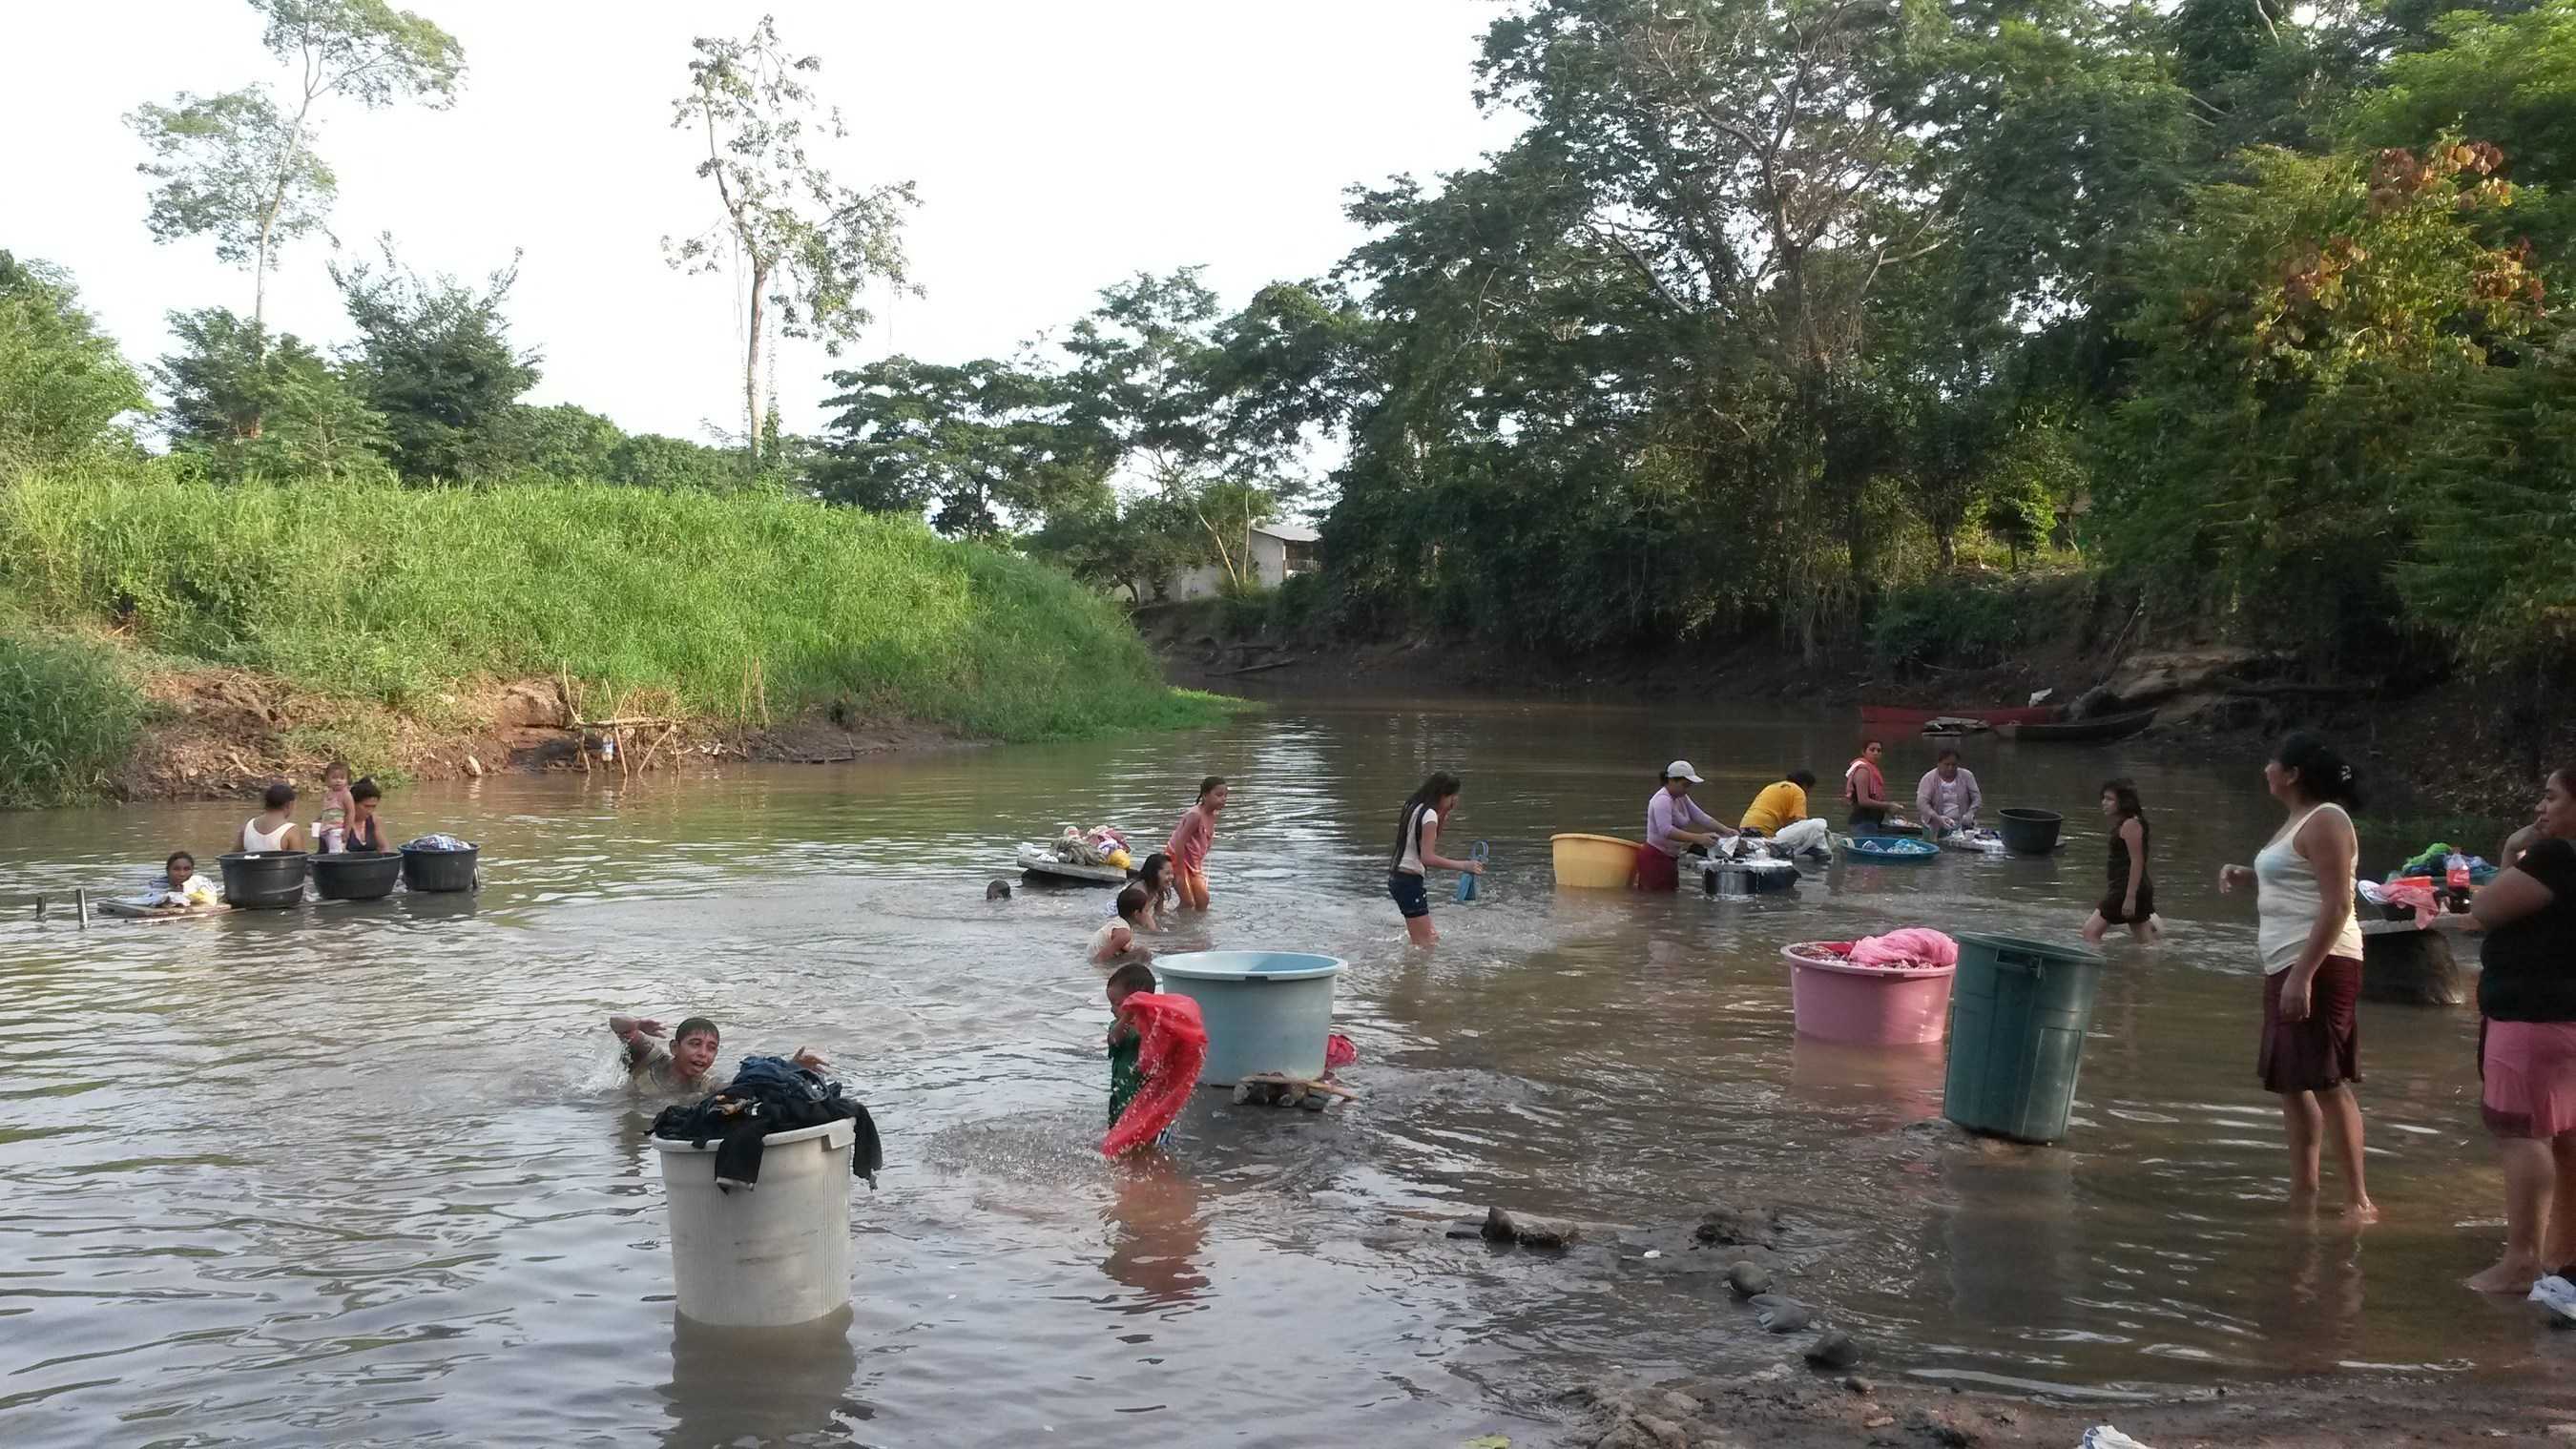 WASH President Eric Harrison recently visited Guatemalan villages near large banana farms sourced by Chiquita.  In this photo, local villagers wash clothes in water polluted by pesticides.